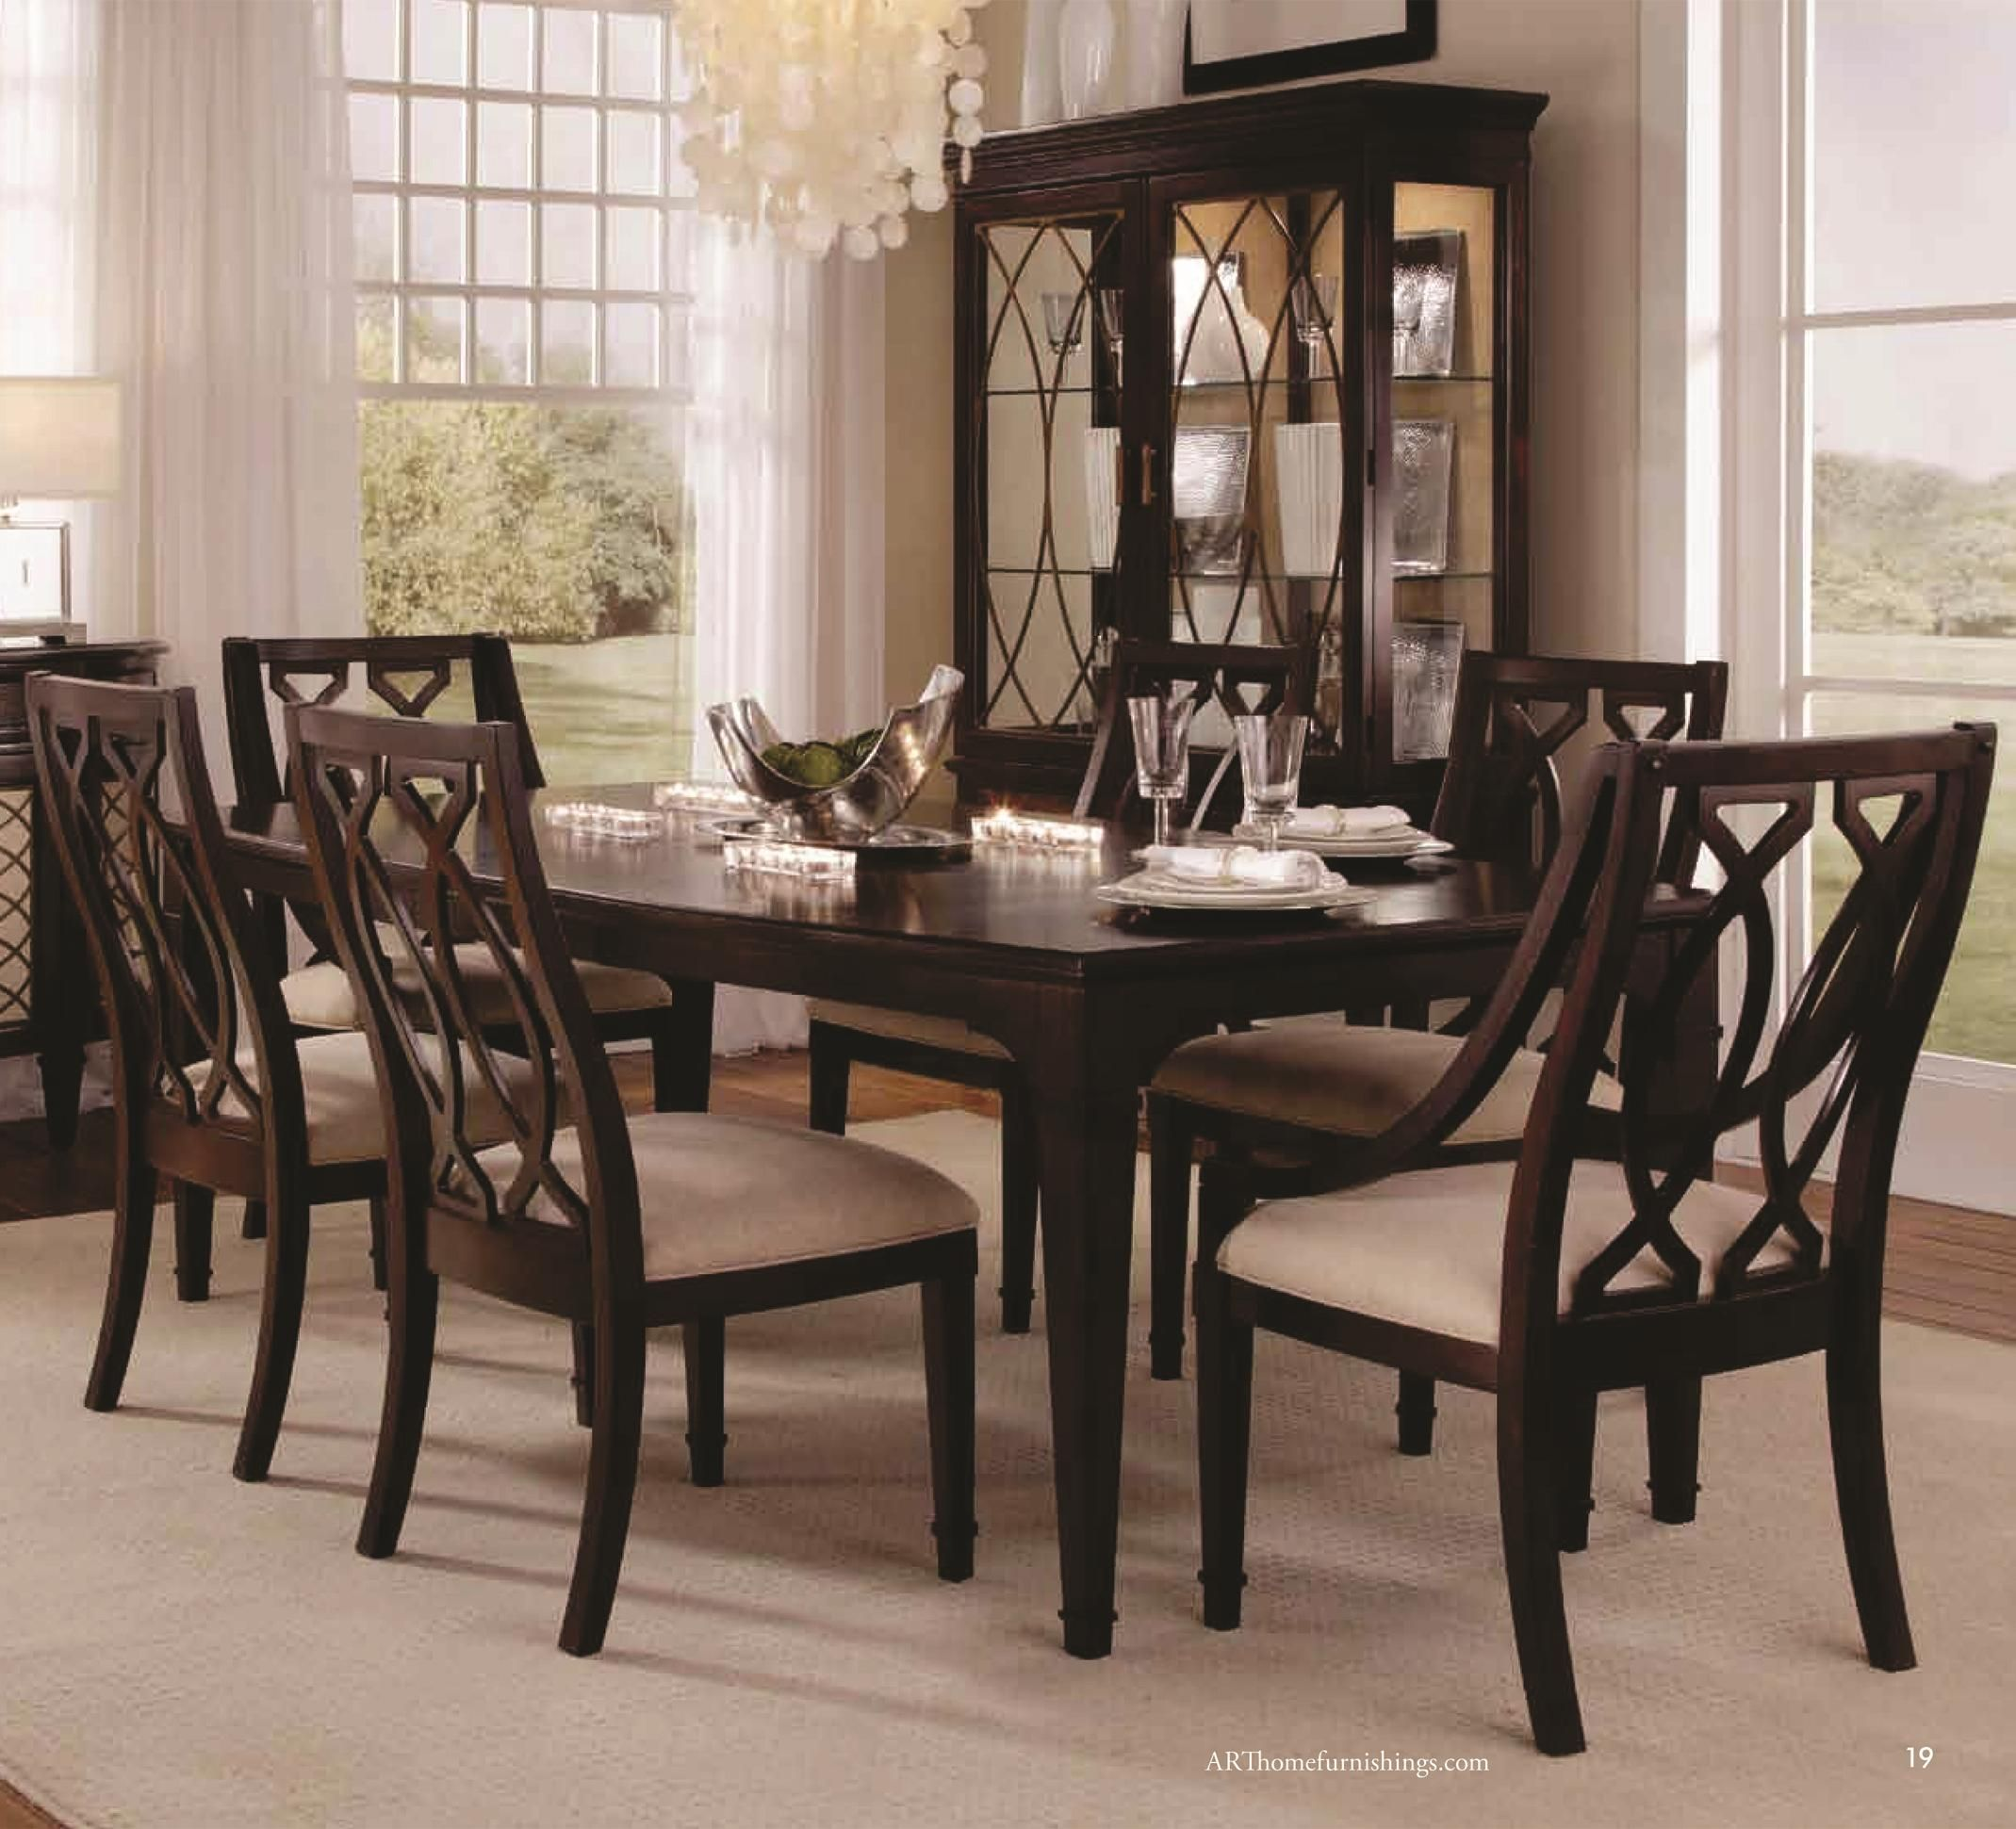 Intrigue Rectangular Dining Table With 2 Arm Chairs & 4 Side Magnificent Side Chairs Dining Room Decorating Design